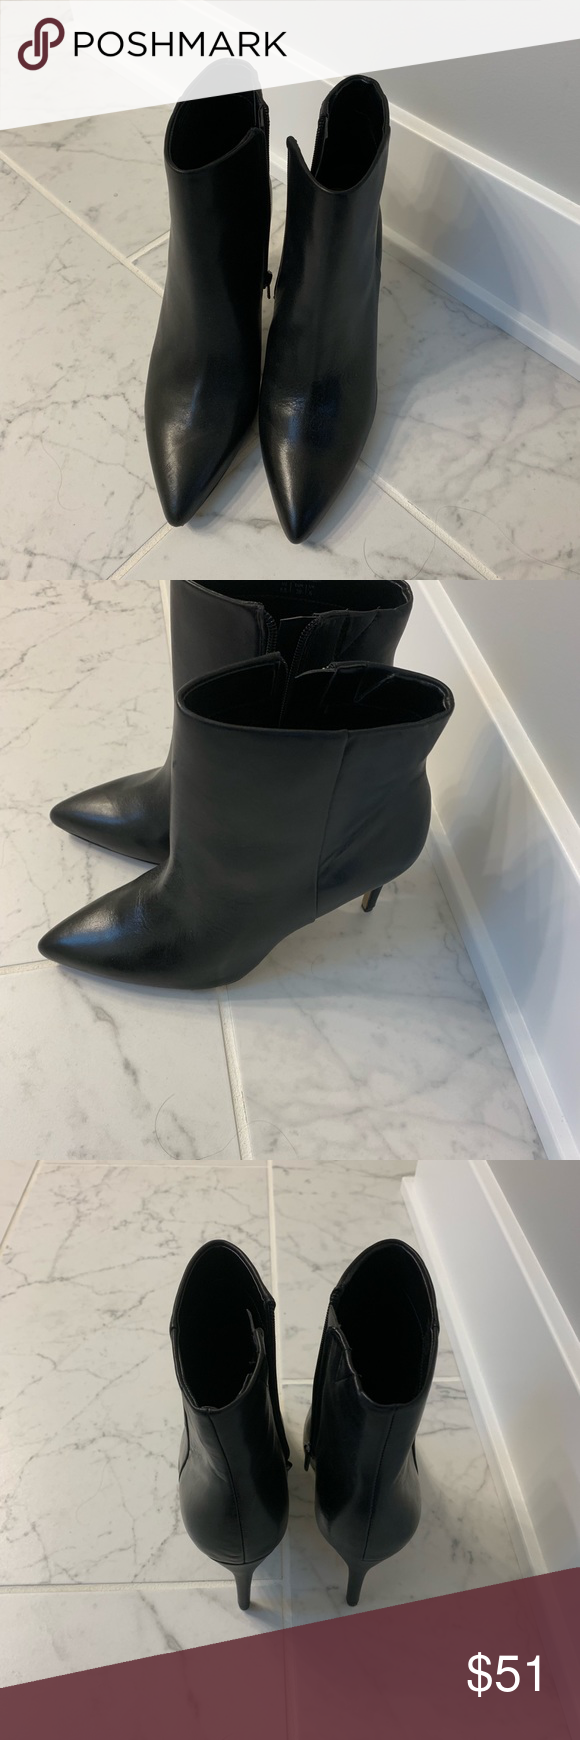 Aldo ankle heeled booties Never worn black Aldo boots. Super cute with dresses or skinny jeans. Dress up or for a casual date night out Aldo Shoes Heeled Boots #skinnyjeansandankleboots